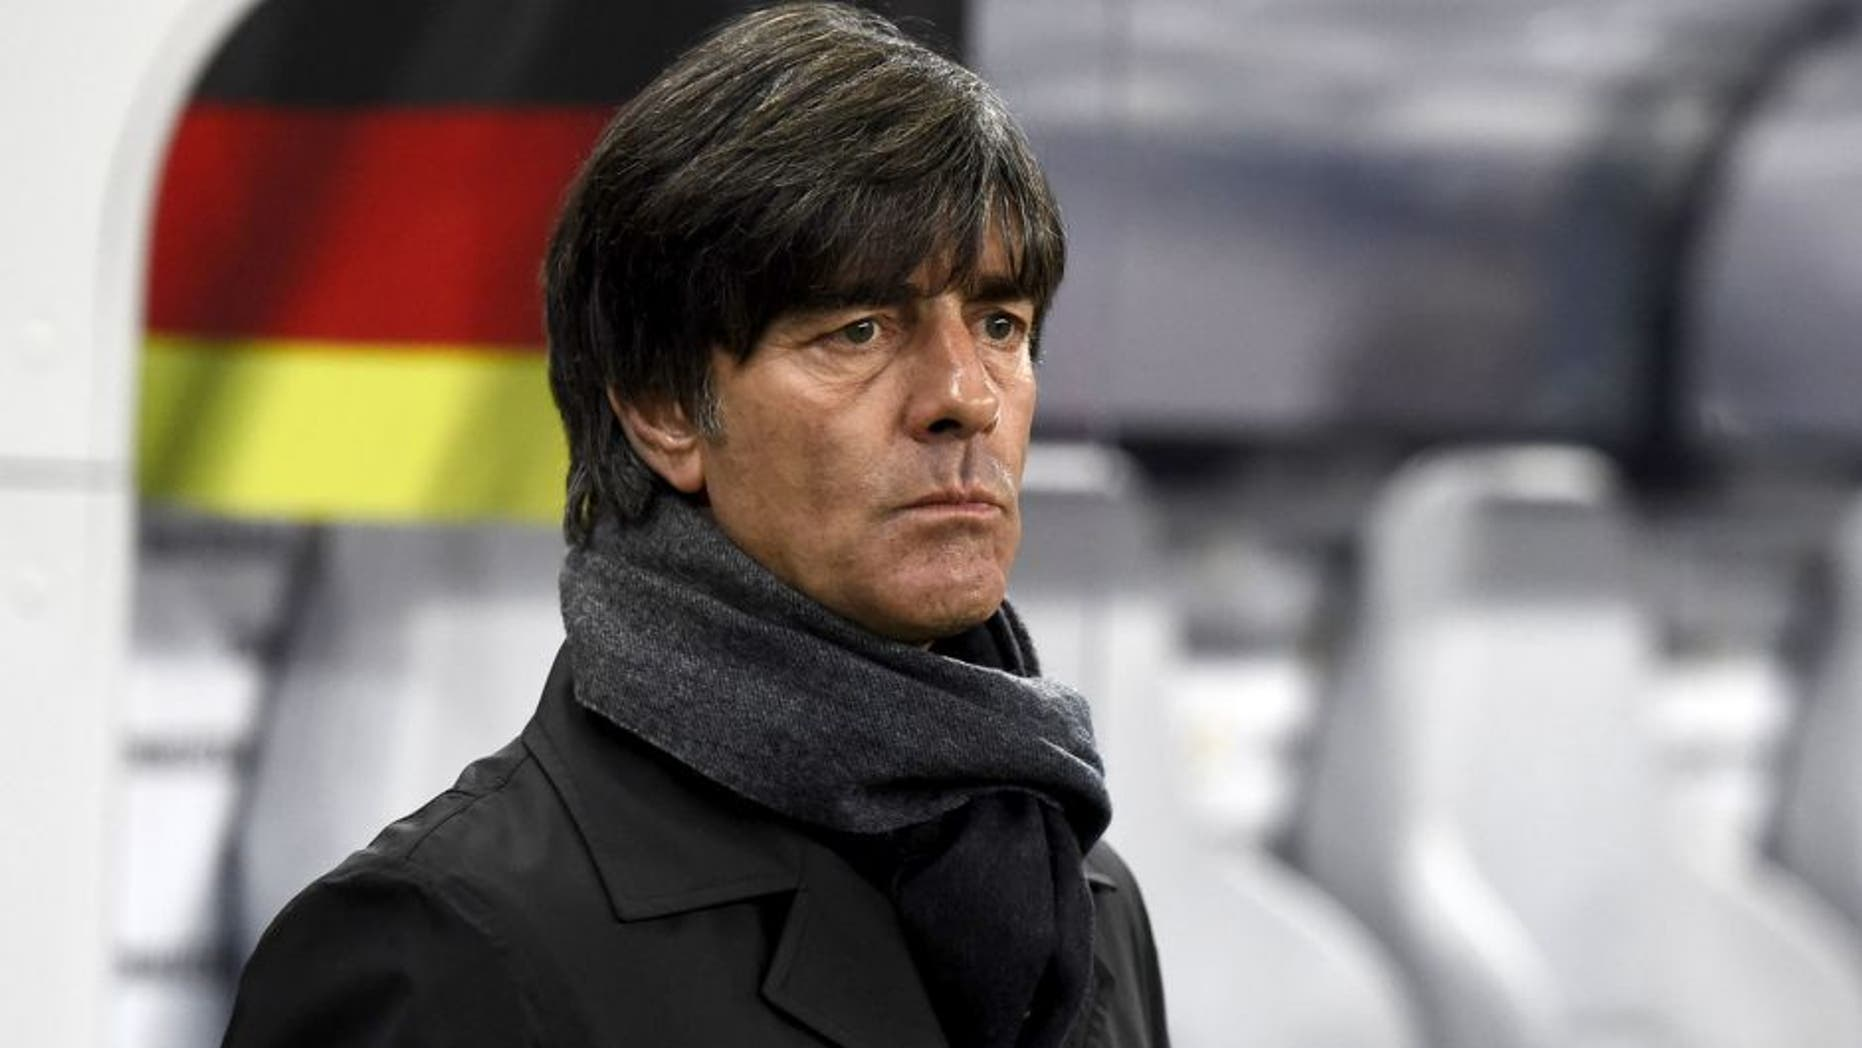 Germany's head coach Joachim Loew arrives for the Euro 2016 Group D qualifying football match between Germany and Georgia in Leipzig, eastern Germany, on October 11, 2015. AFP PHOTO / TOBIAS SCHWARZ (Photo credit should read TOBIAS SCHWARZ/AFP/Getty Images)